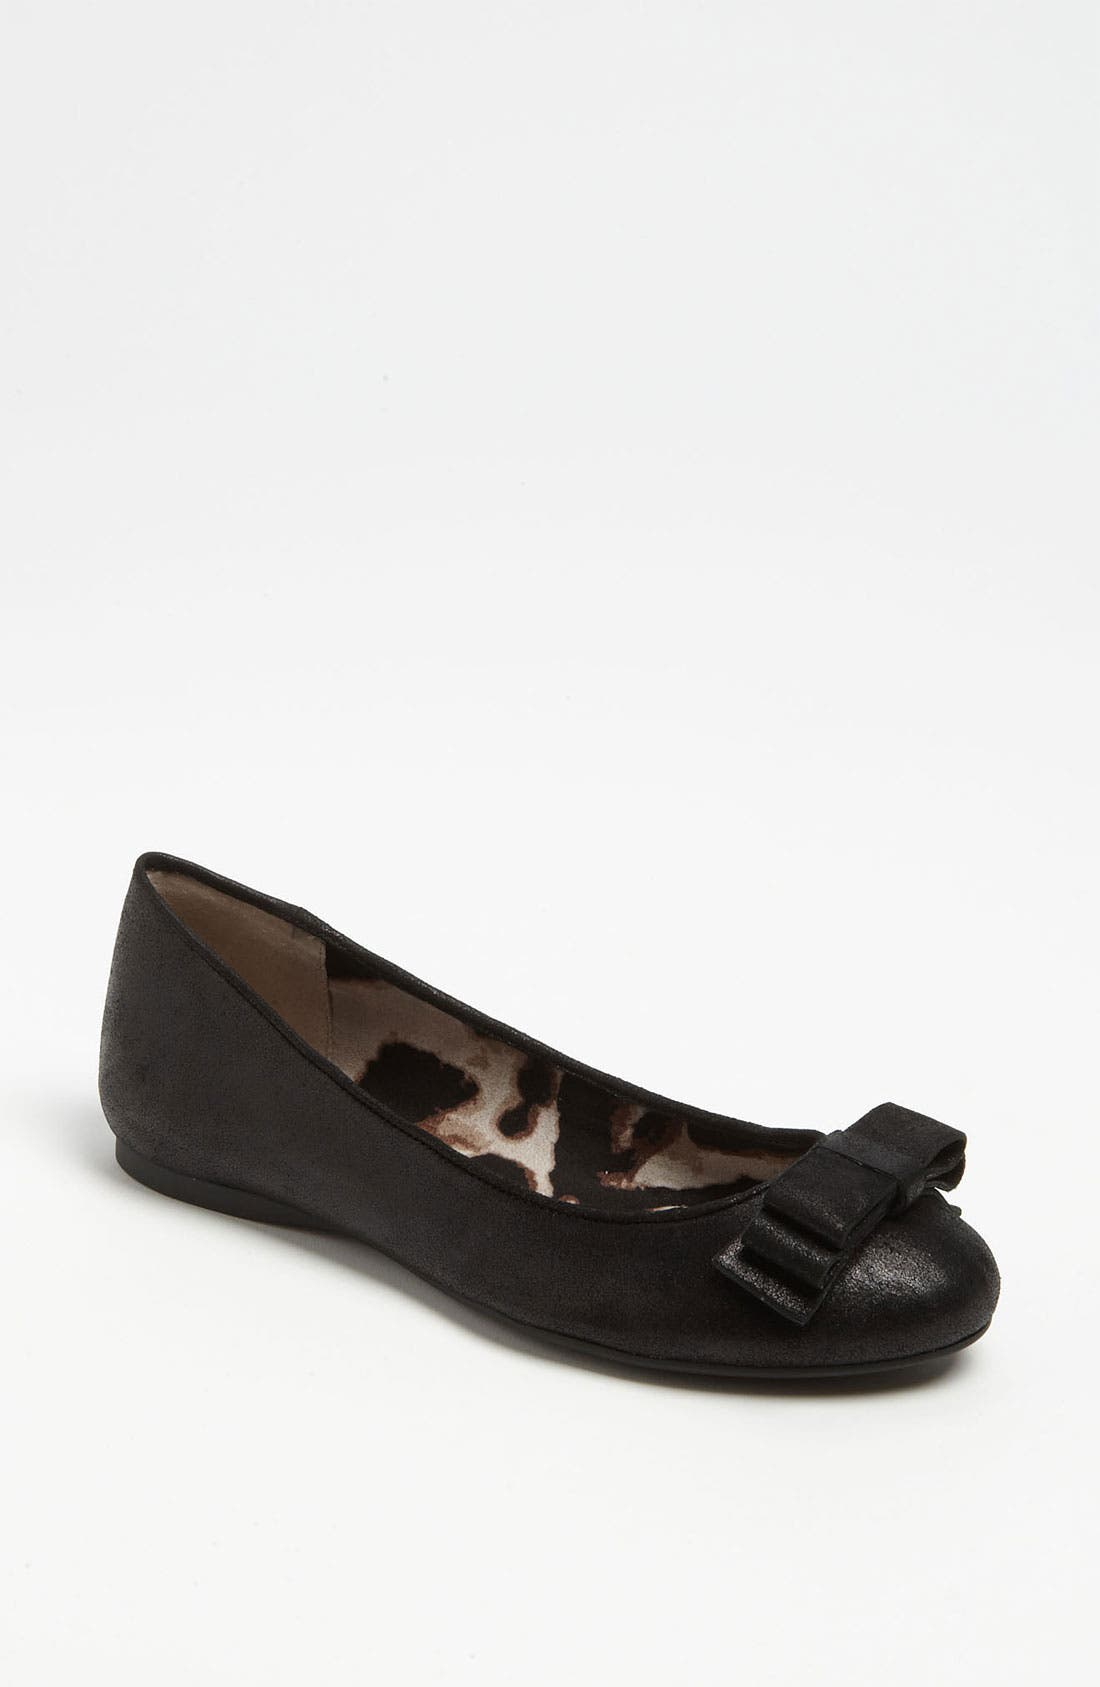 Alternate Image 1 Selected - Jessica Simpson 'Mirandola' Flat